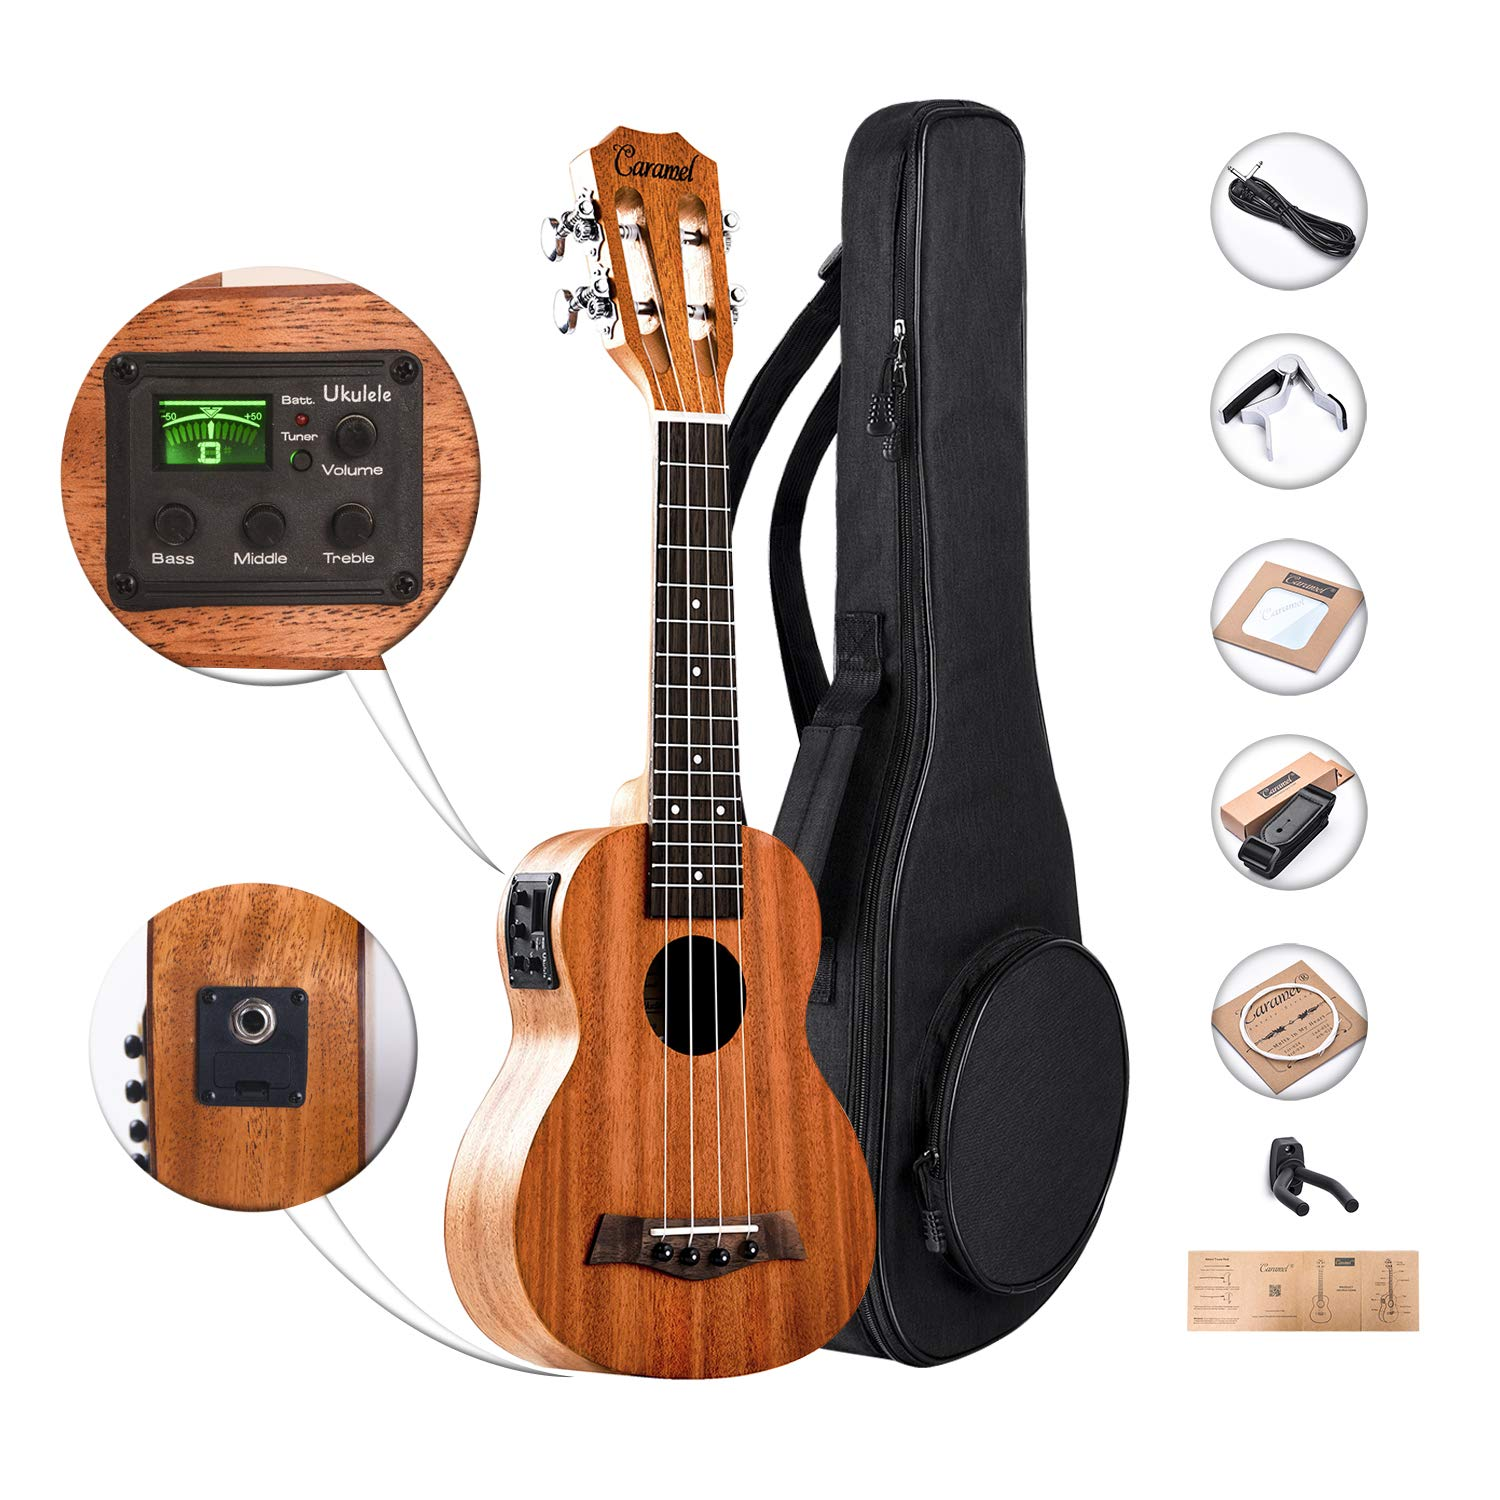 SolidMahoganyTopand Back-CaramelCS419SopranoAcousticElectricUkulelewith Aquila Strings, Padded Gig Bag, Strap and Picks